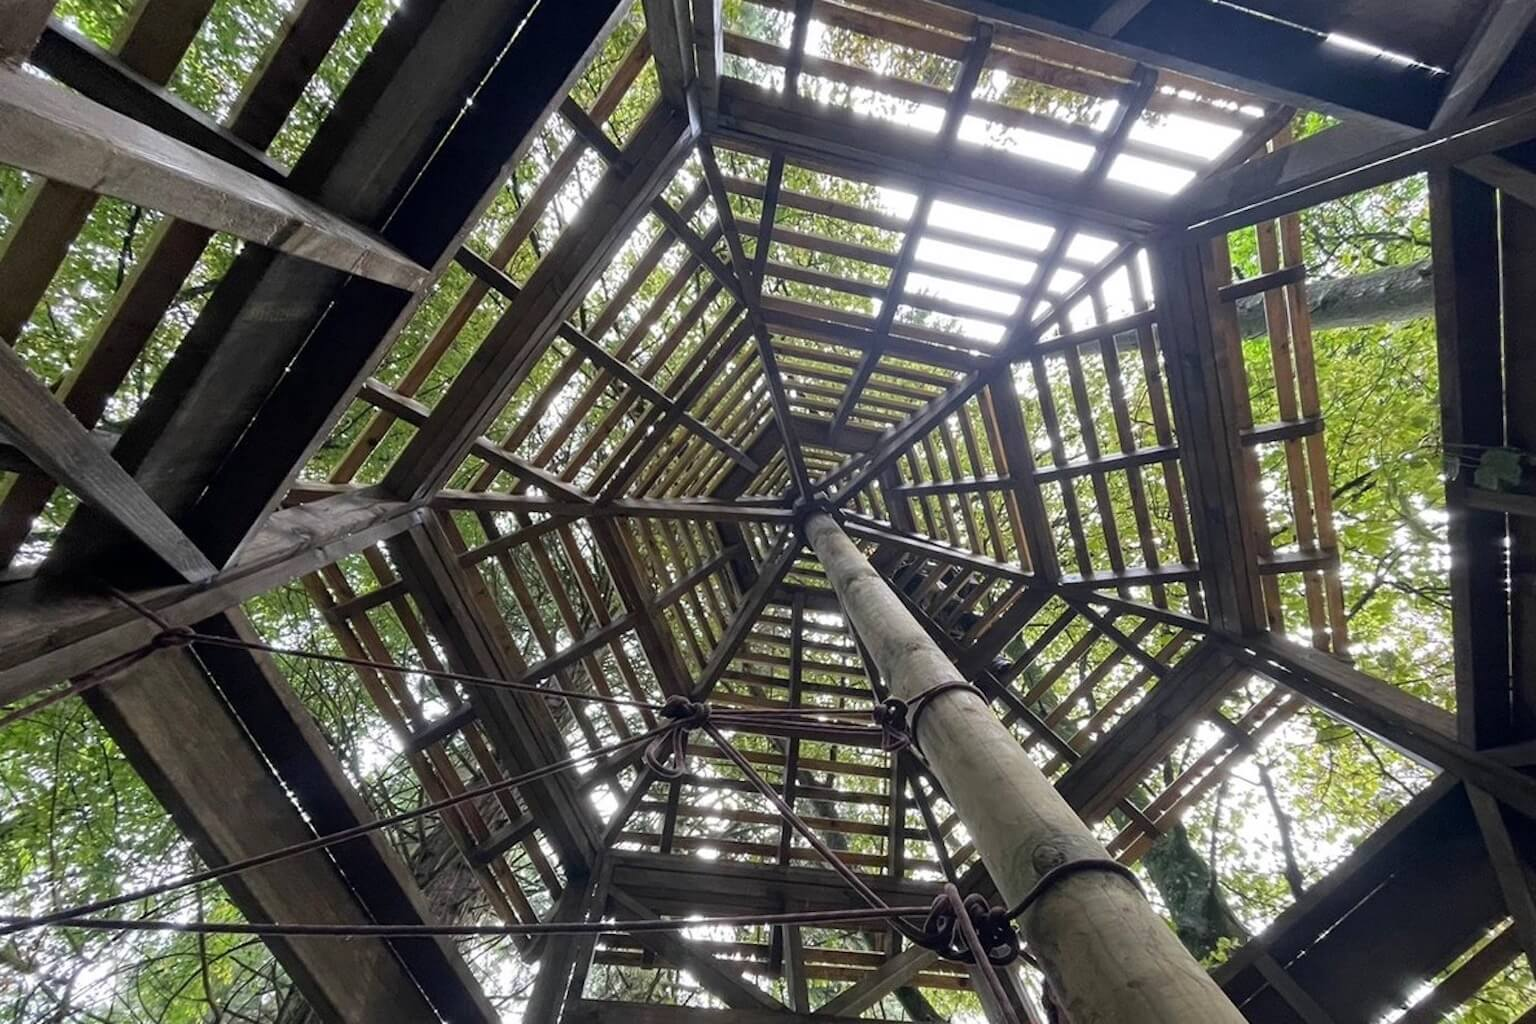 Looking up through the framework 2